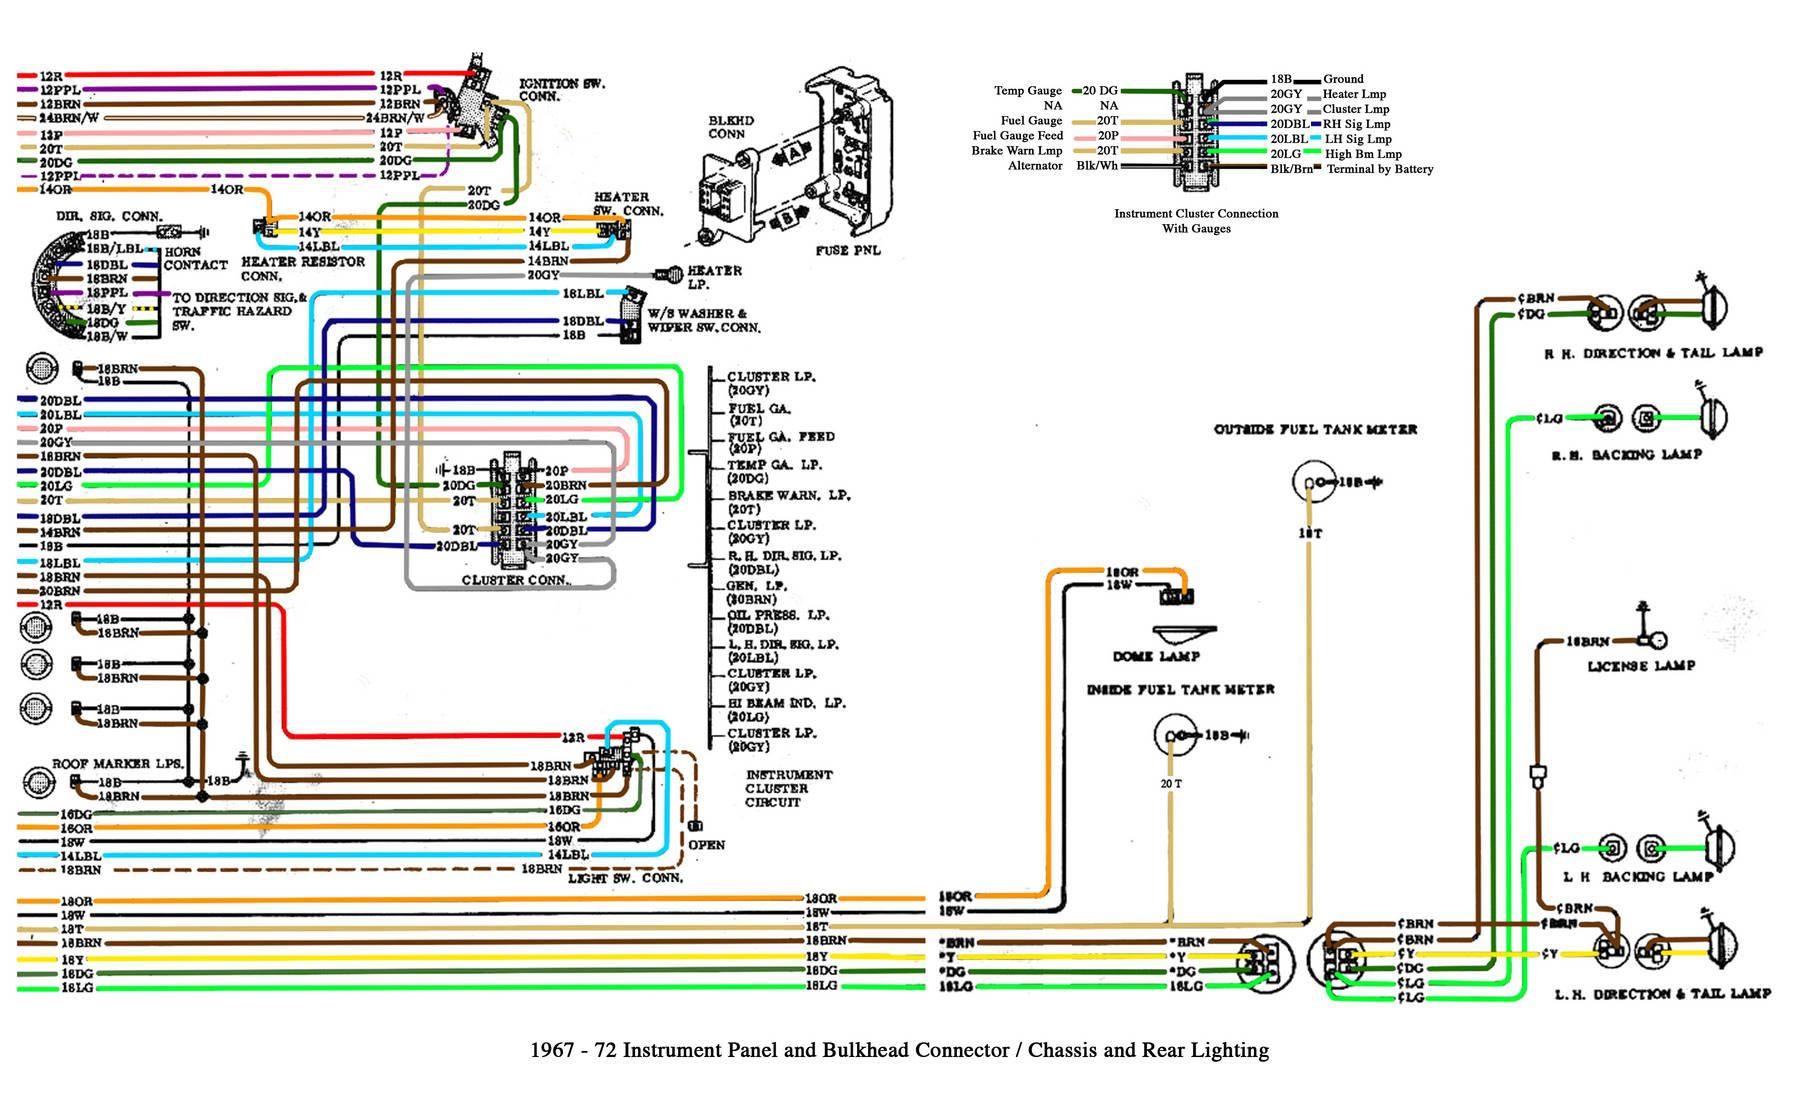 wiring diagram | Bryan's old truck | Pinterest | Gmc